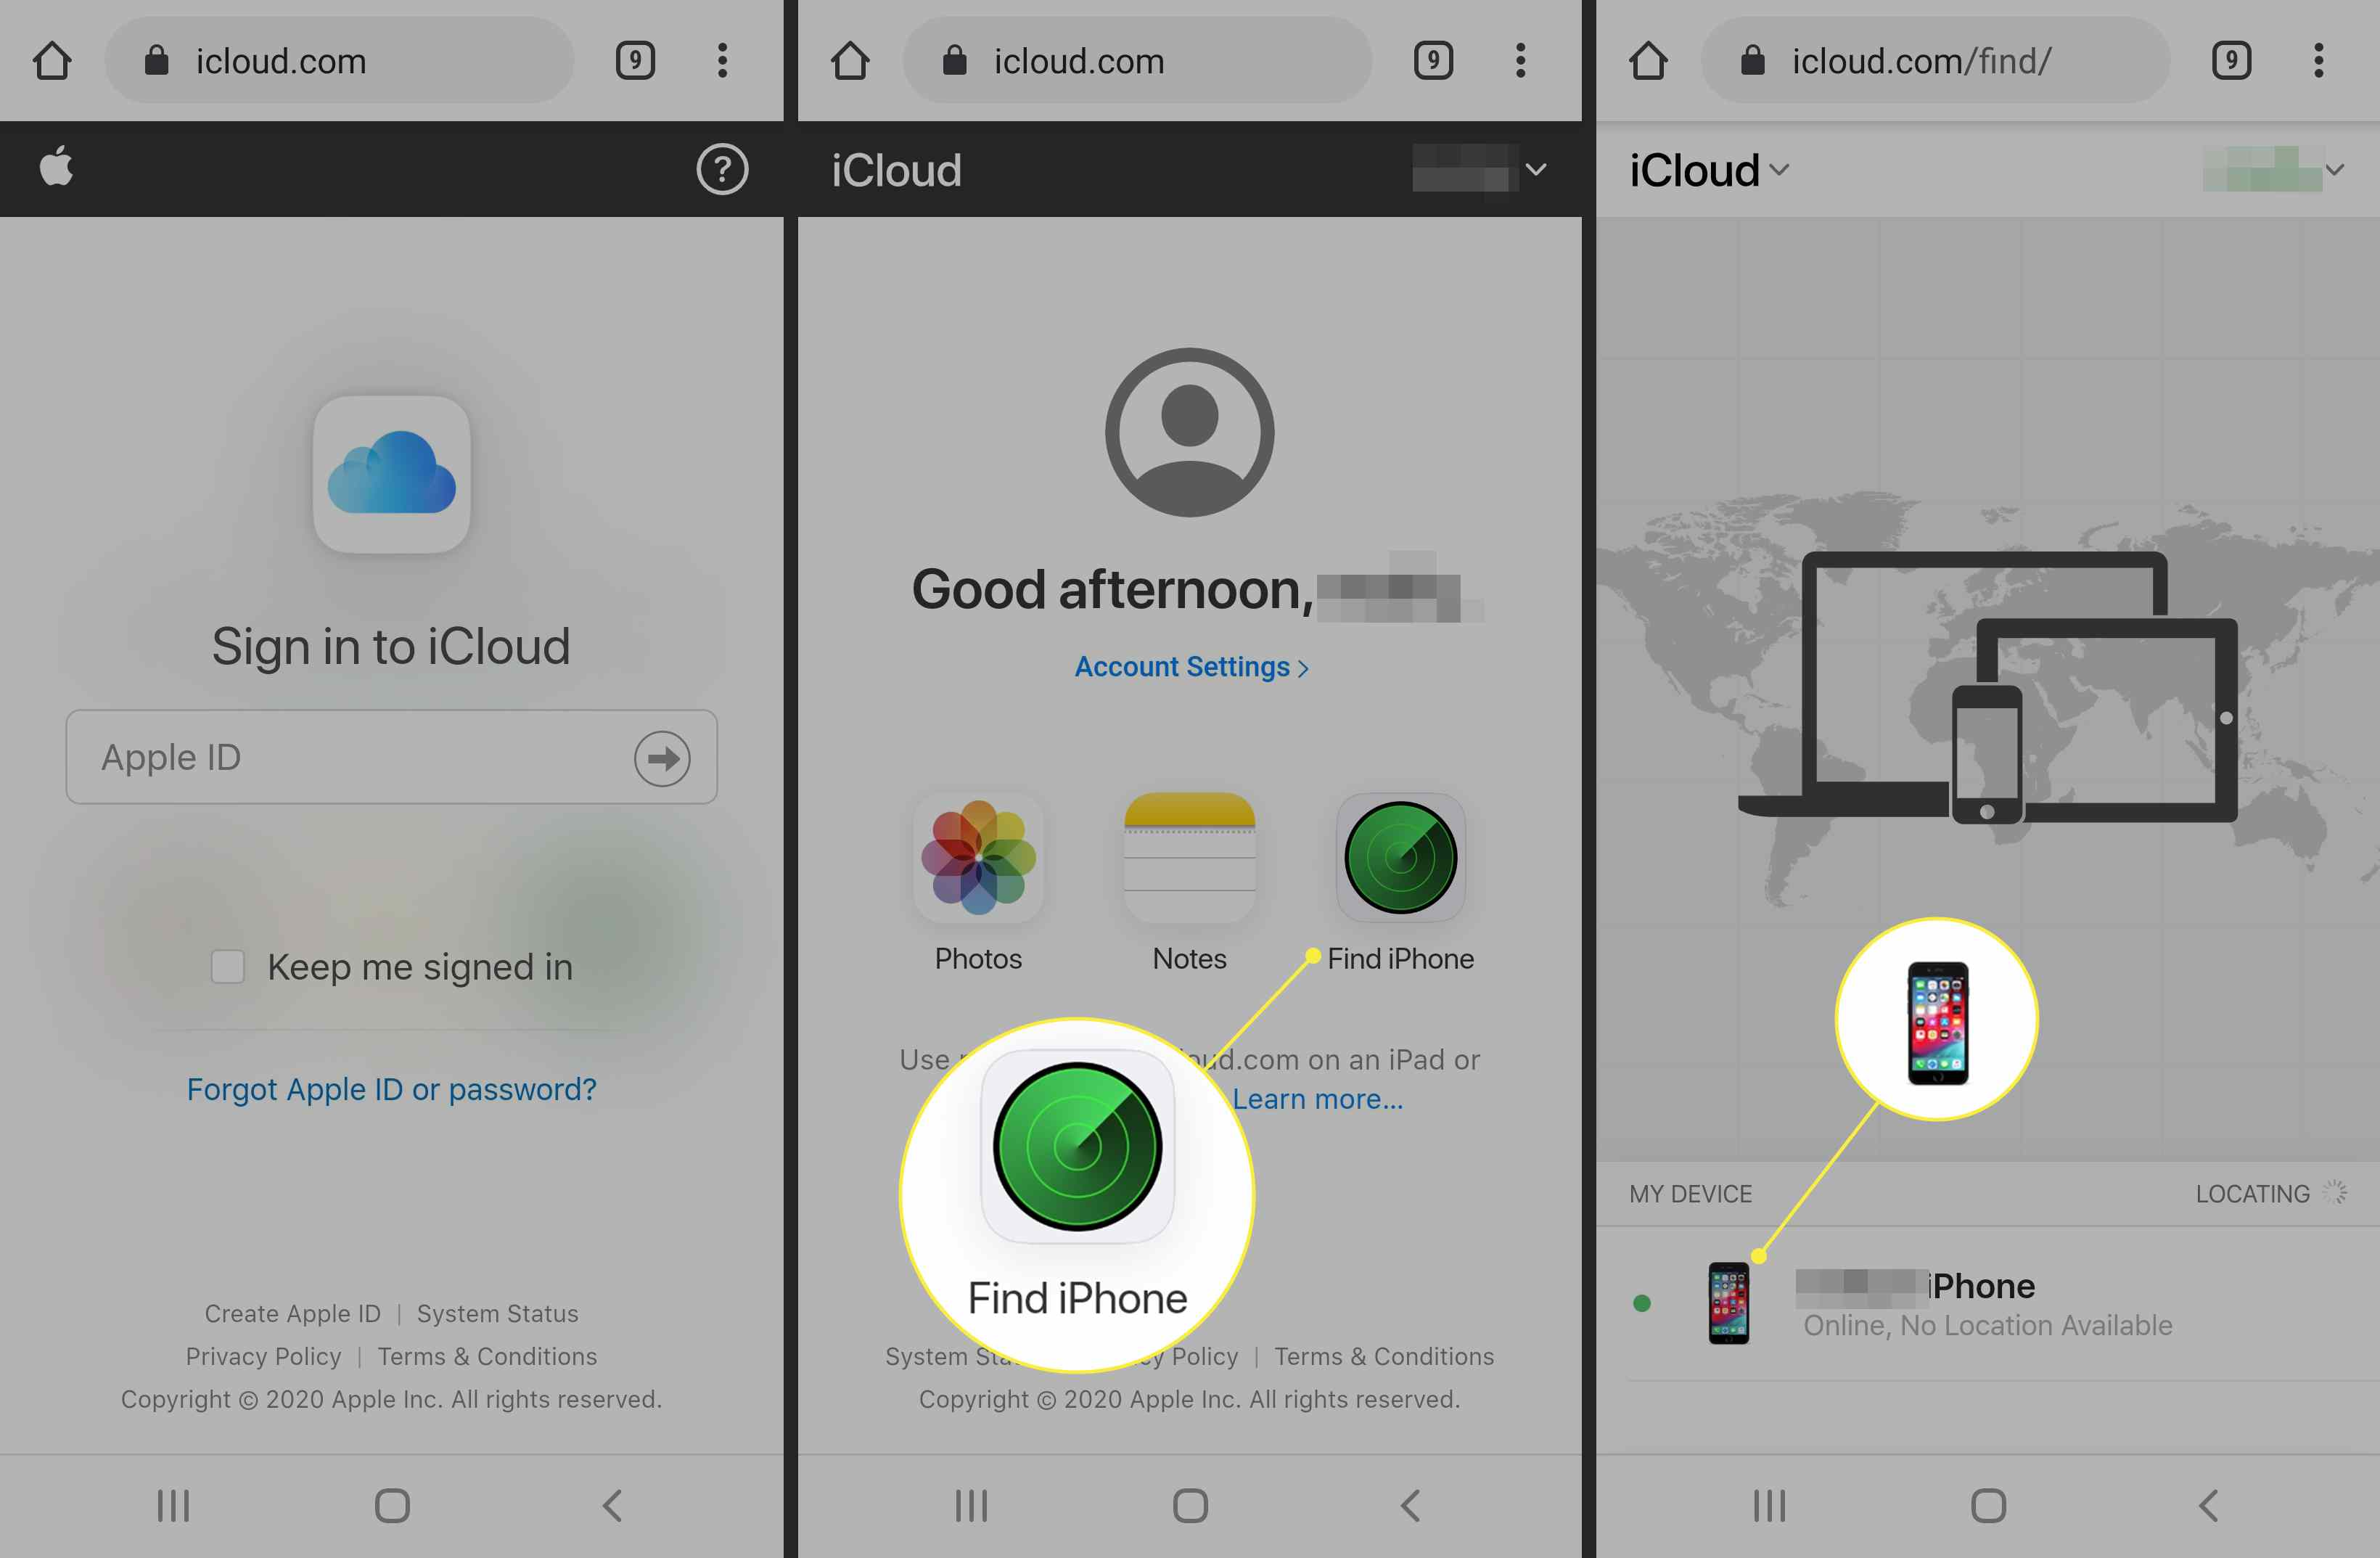 Find iPhone and a device on an Android